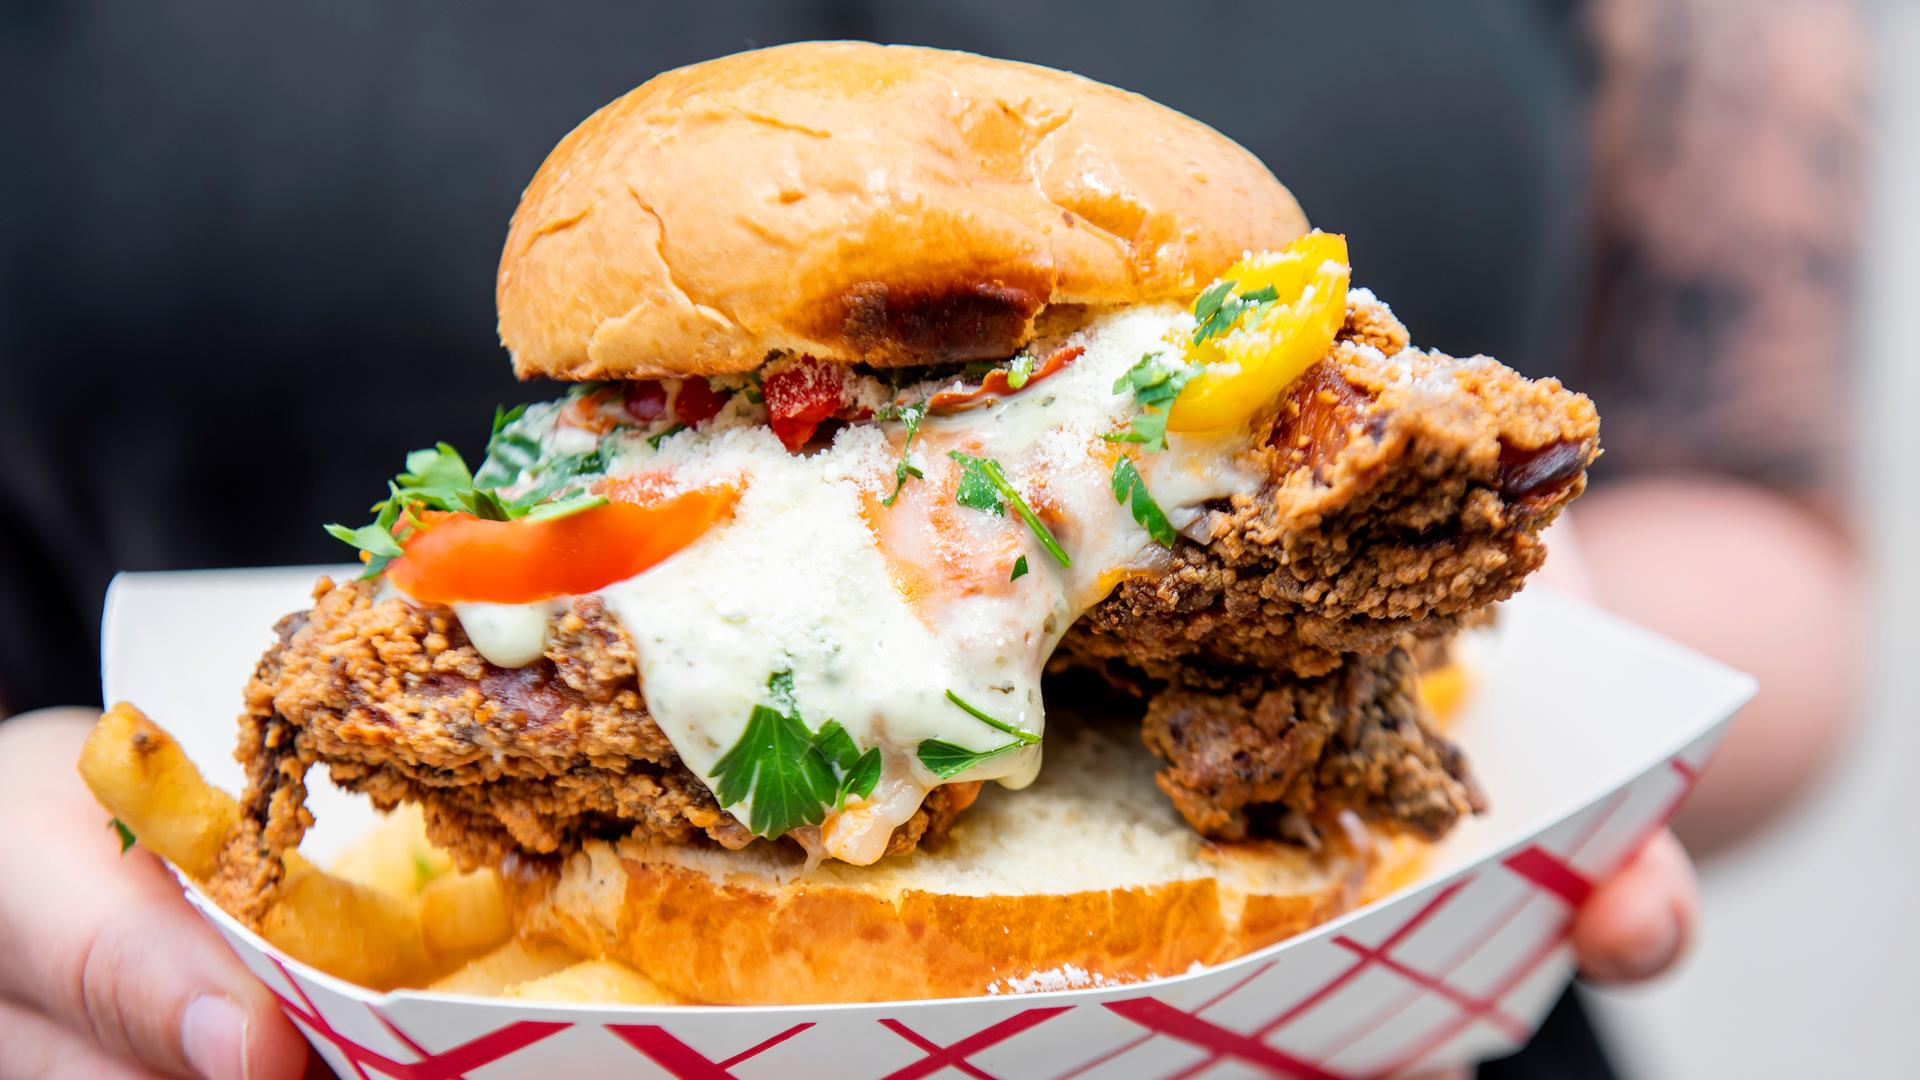 The best Toronto food markets   6 Spice Rack dishes out fried chicken sandwiches at Street Eats Market